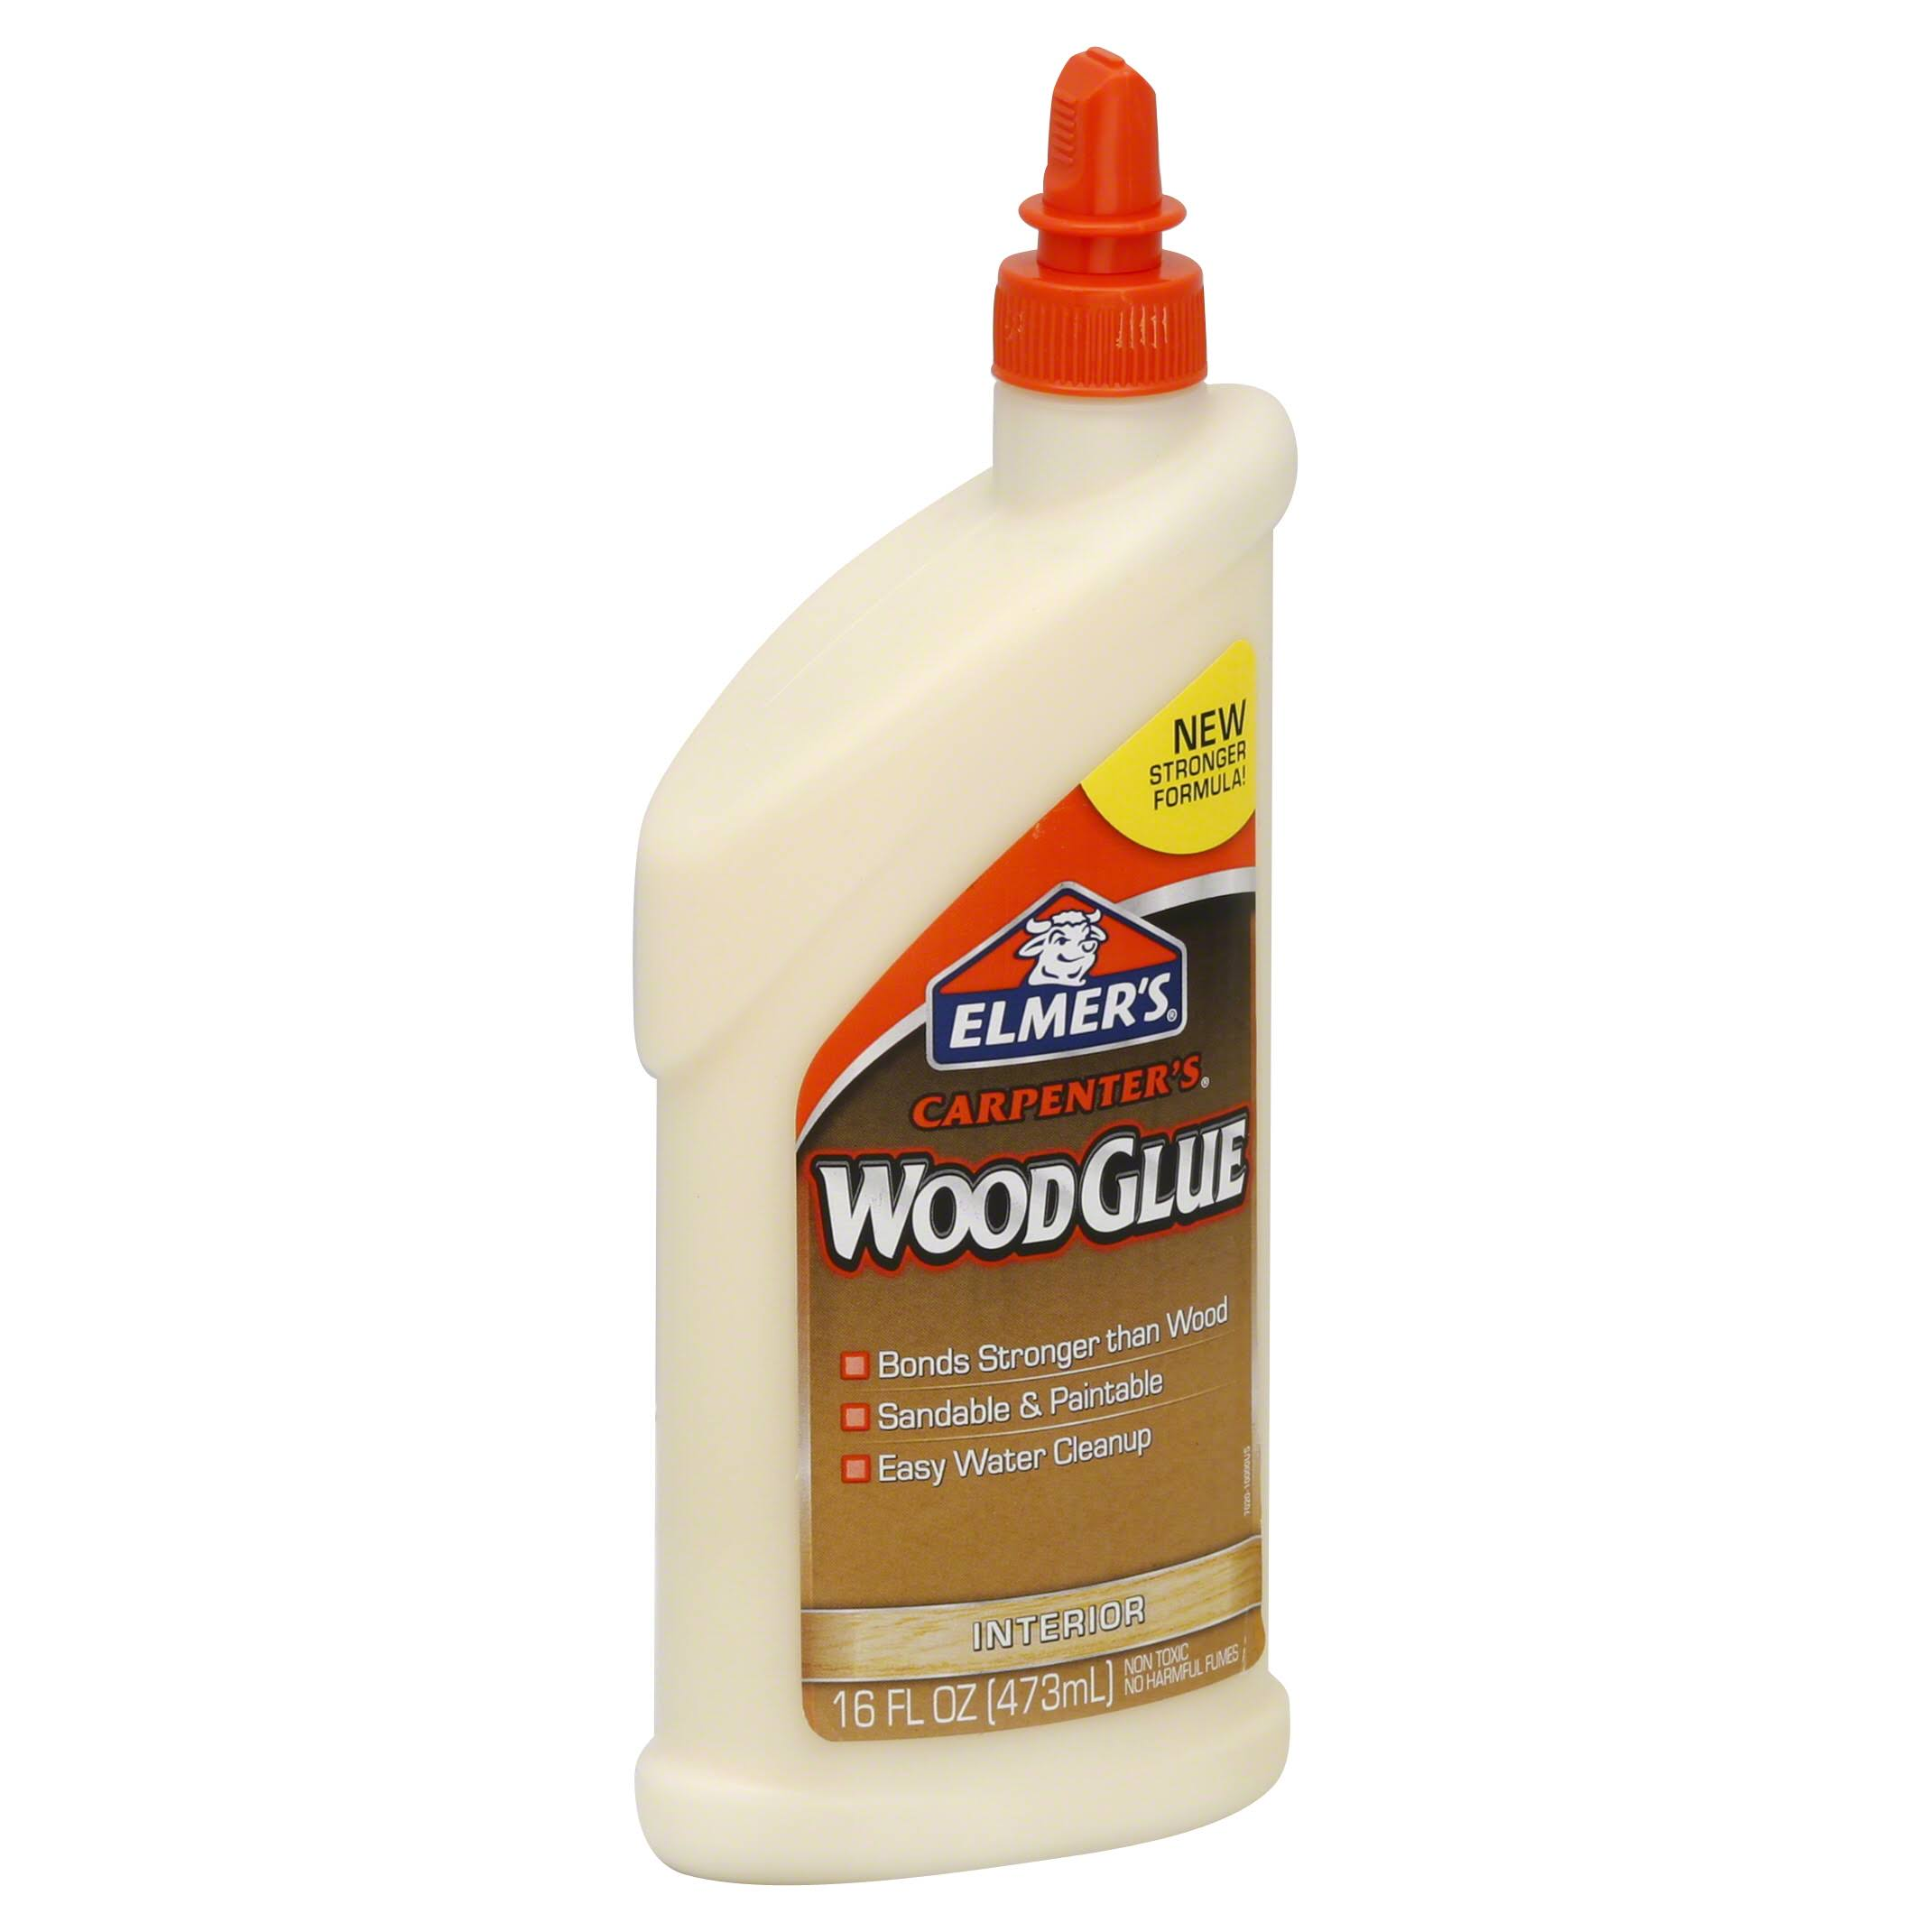 Elmer's Carpenter's Wood Glue - 16oz